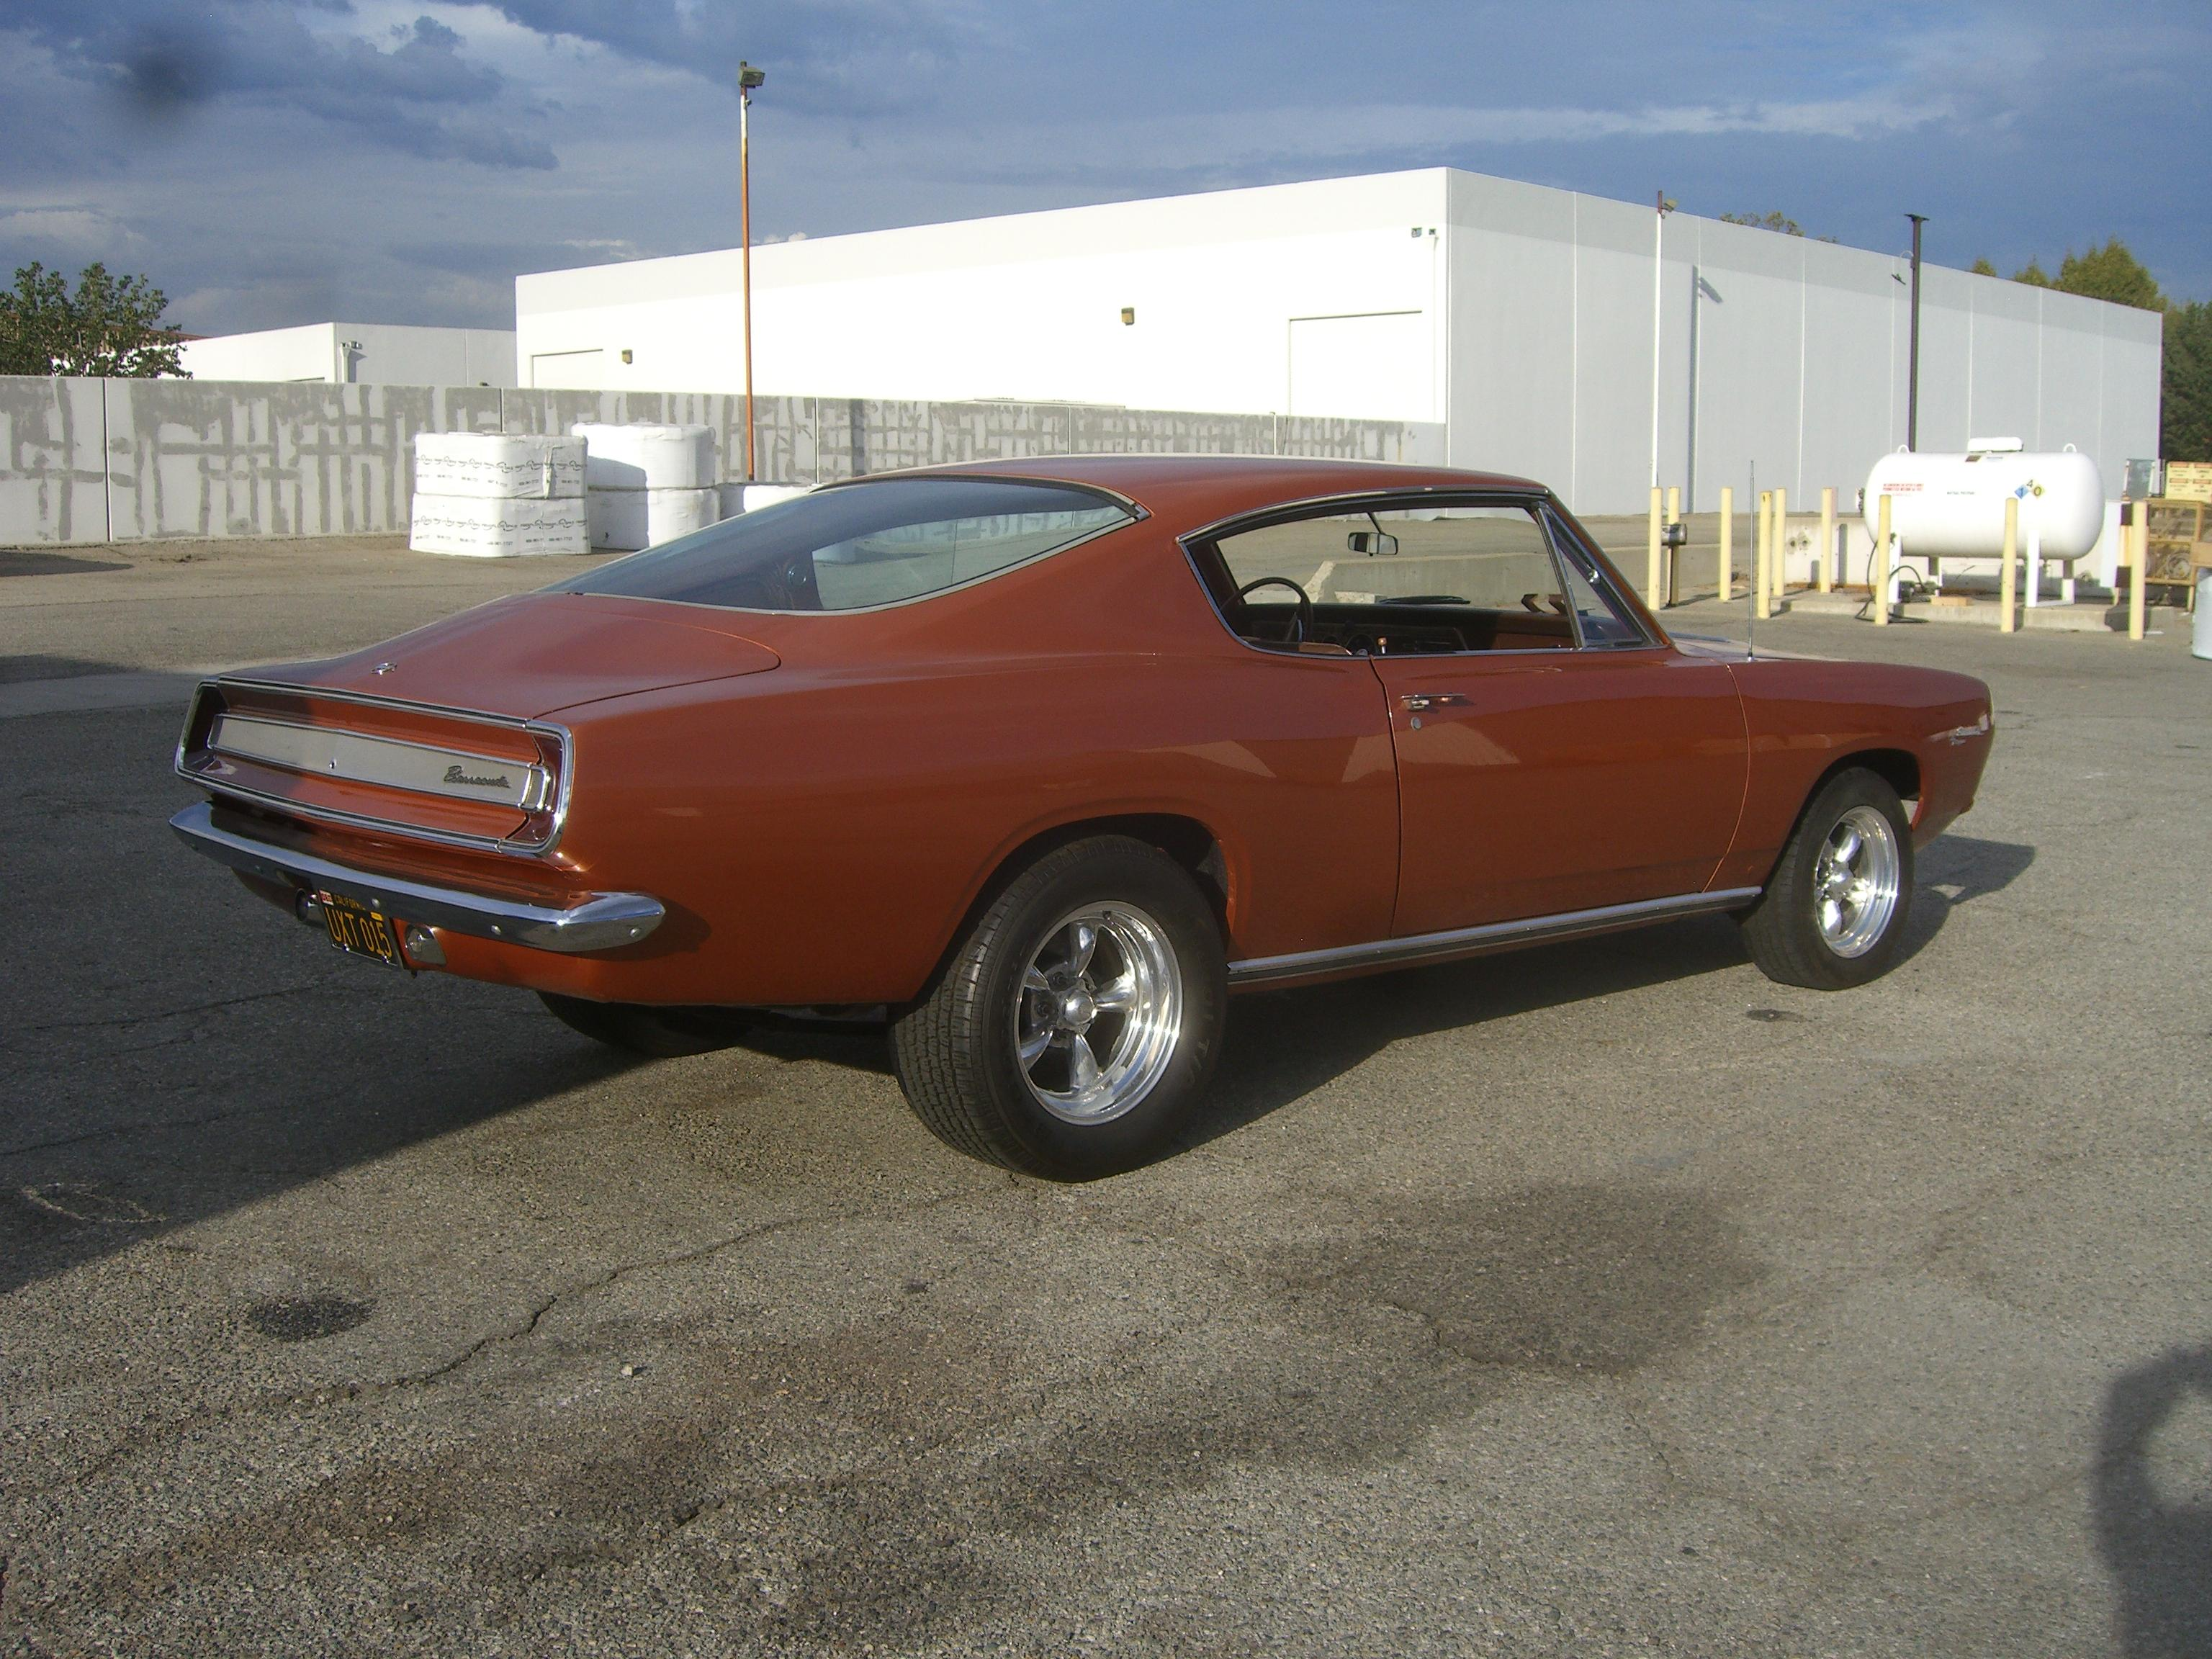 1967 plymouth barracuda craigslist autos post for Used fish finders craigslist